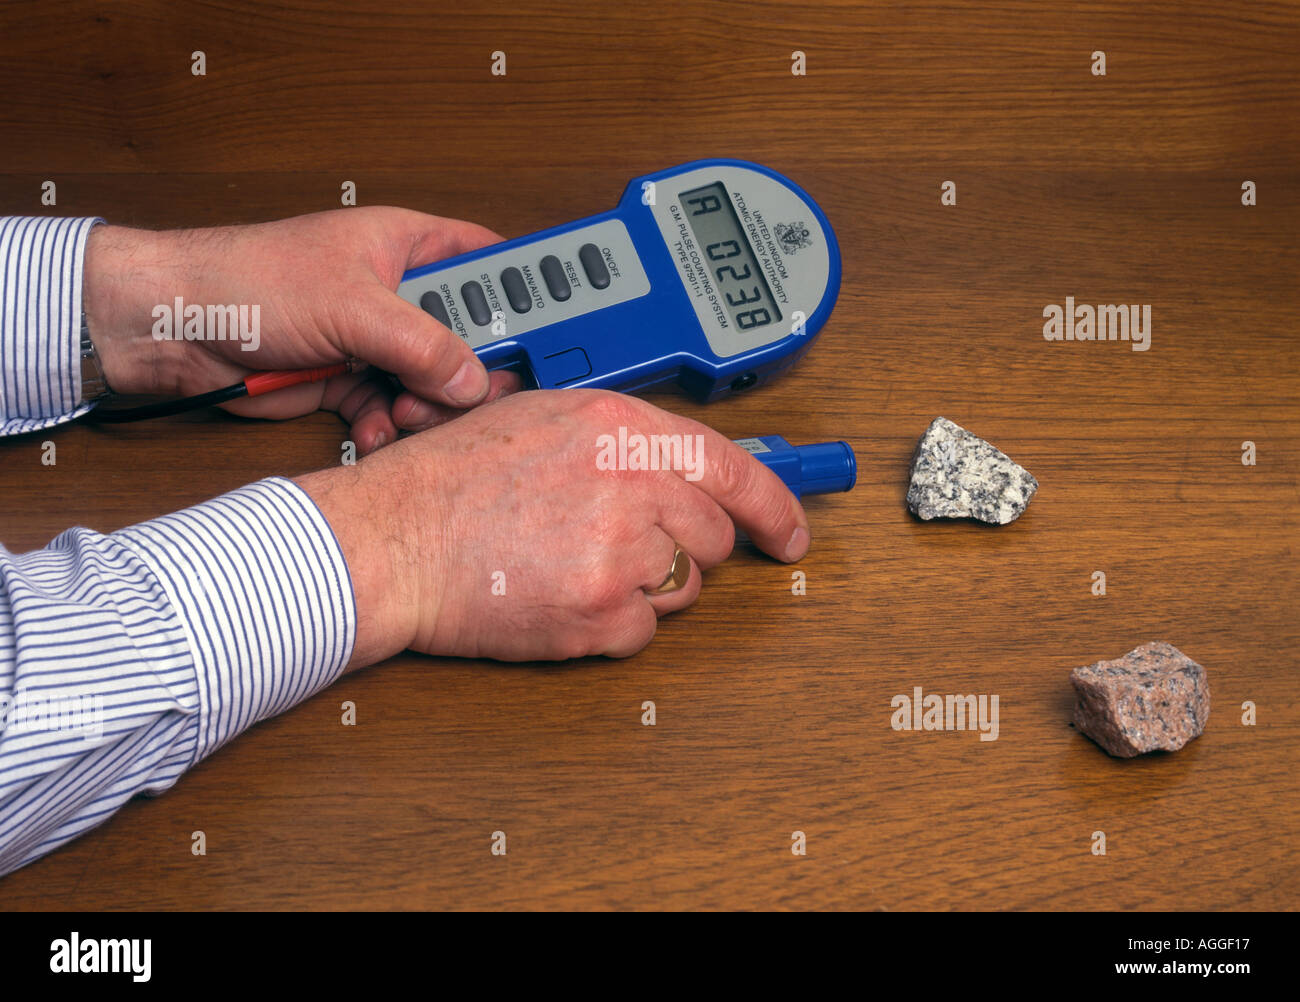 measuring the radioactivity of a rock sample with a geiger counter Stock Photo